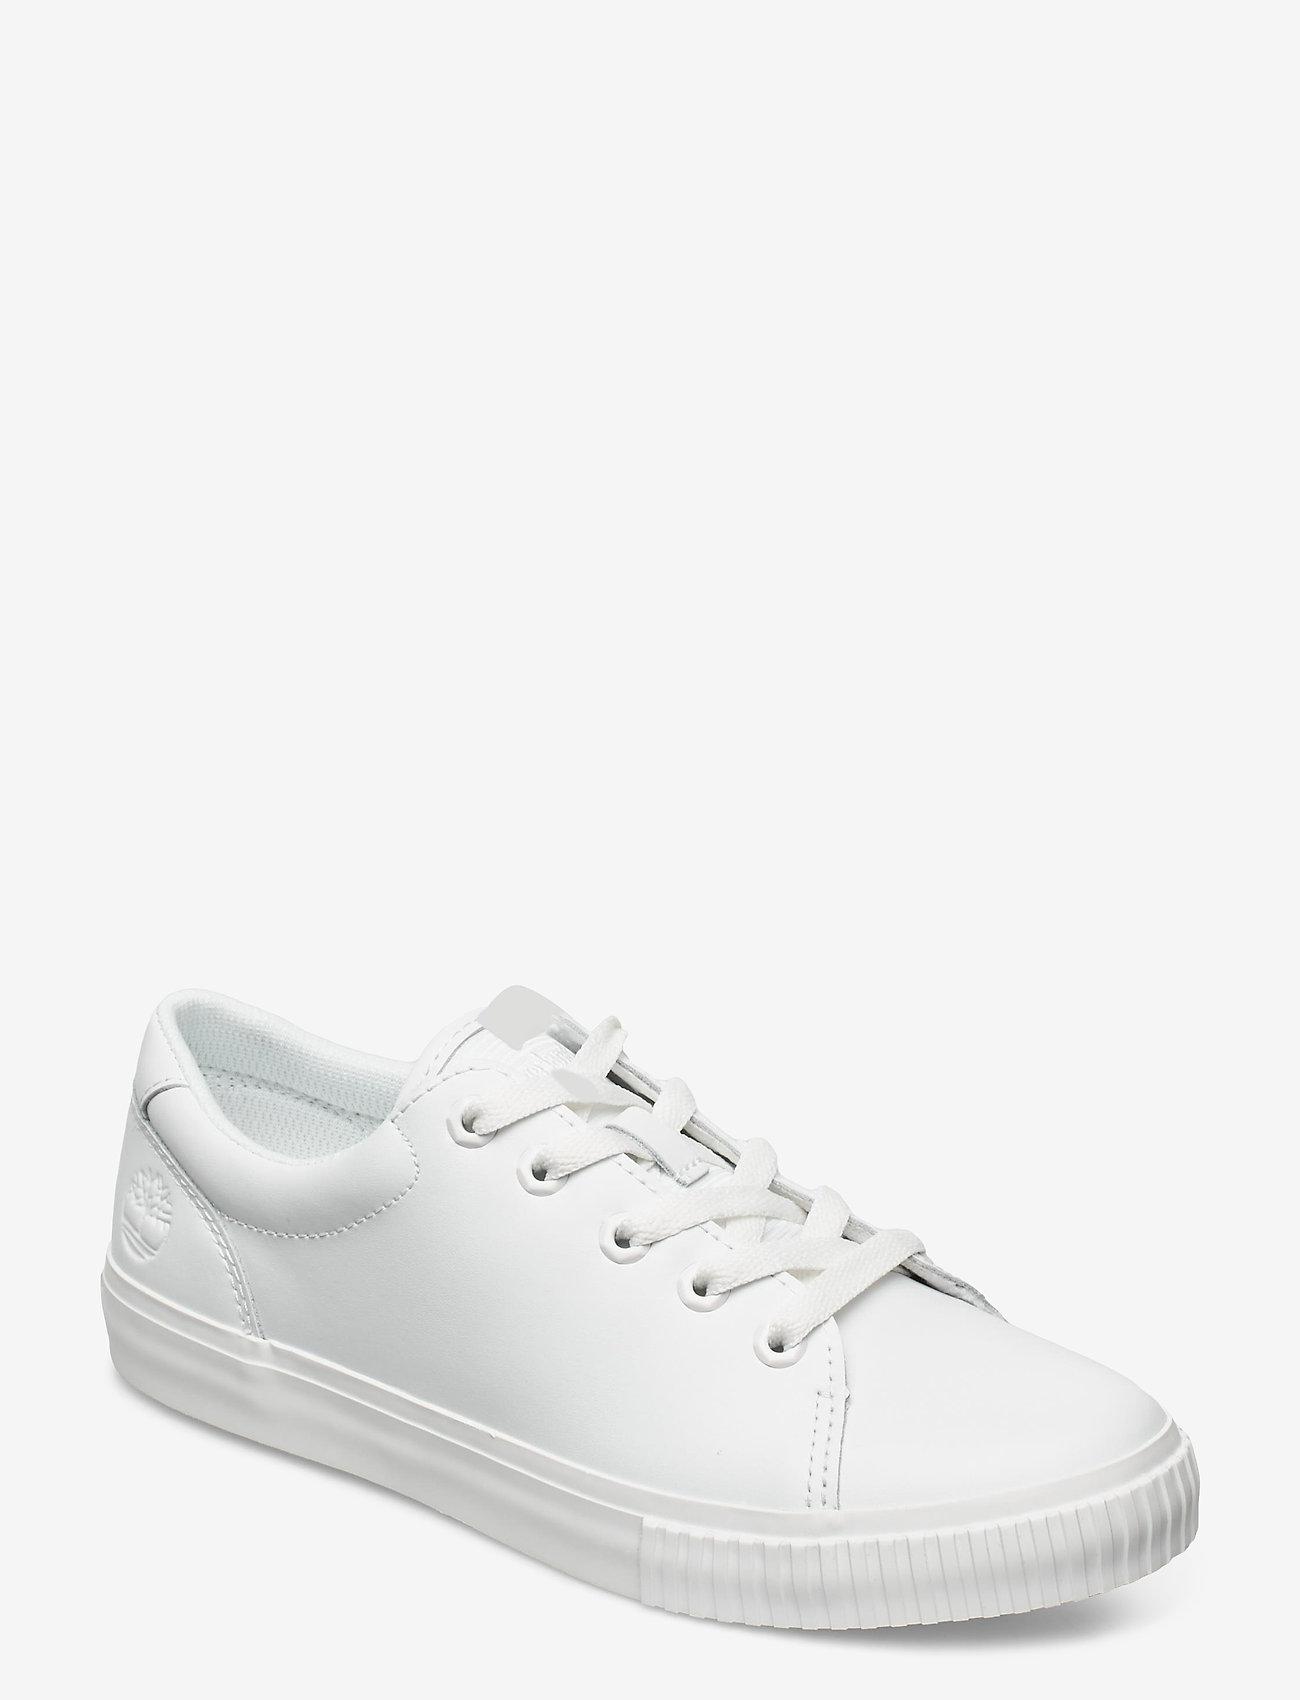 Timberland - SKYLA BAY LTHR OX WHI - lage sneakers - white - 0